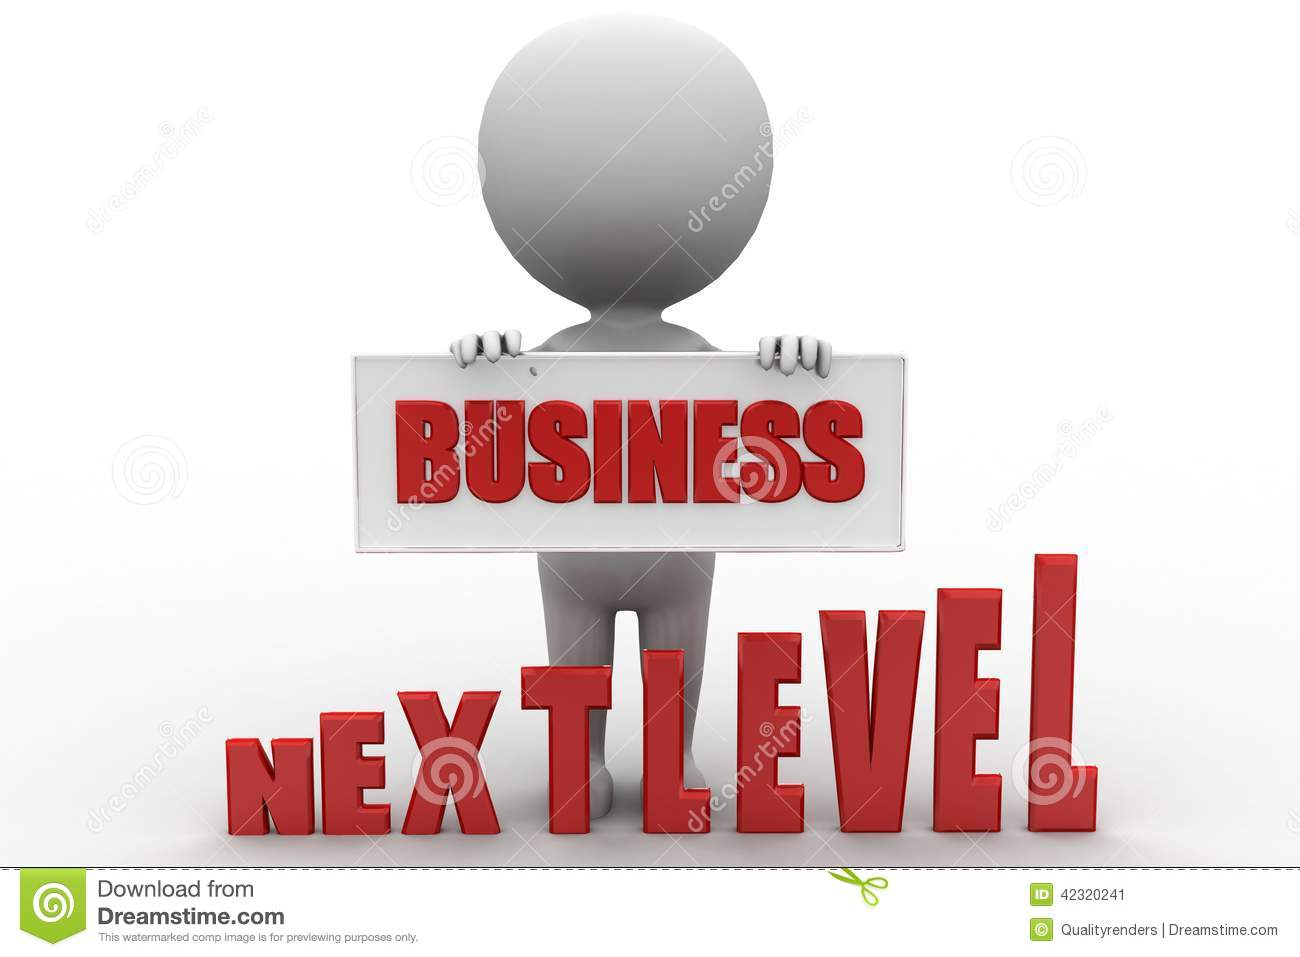 7 Steps to Take Your Business to the Next Level